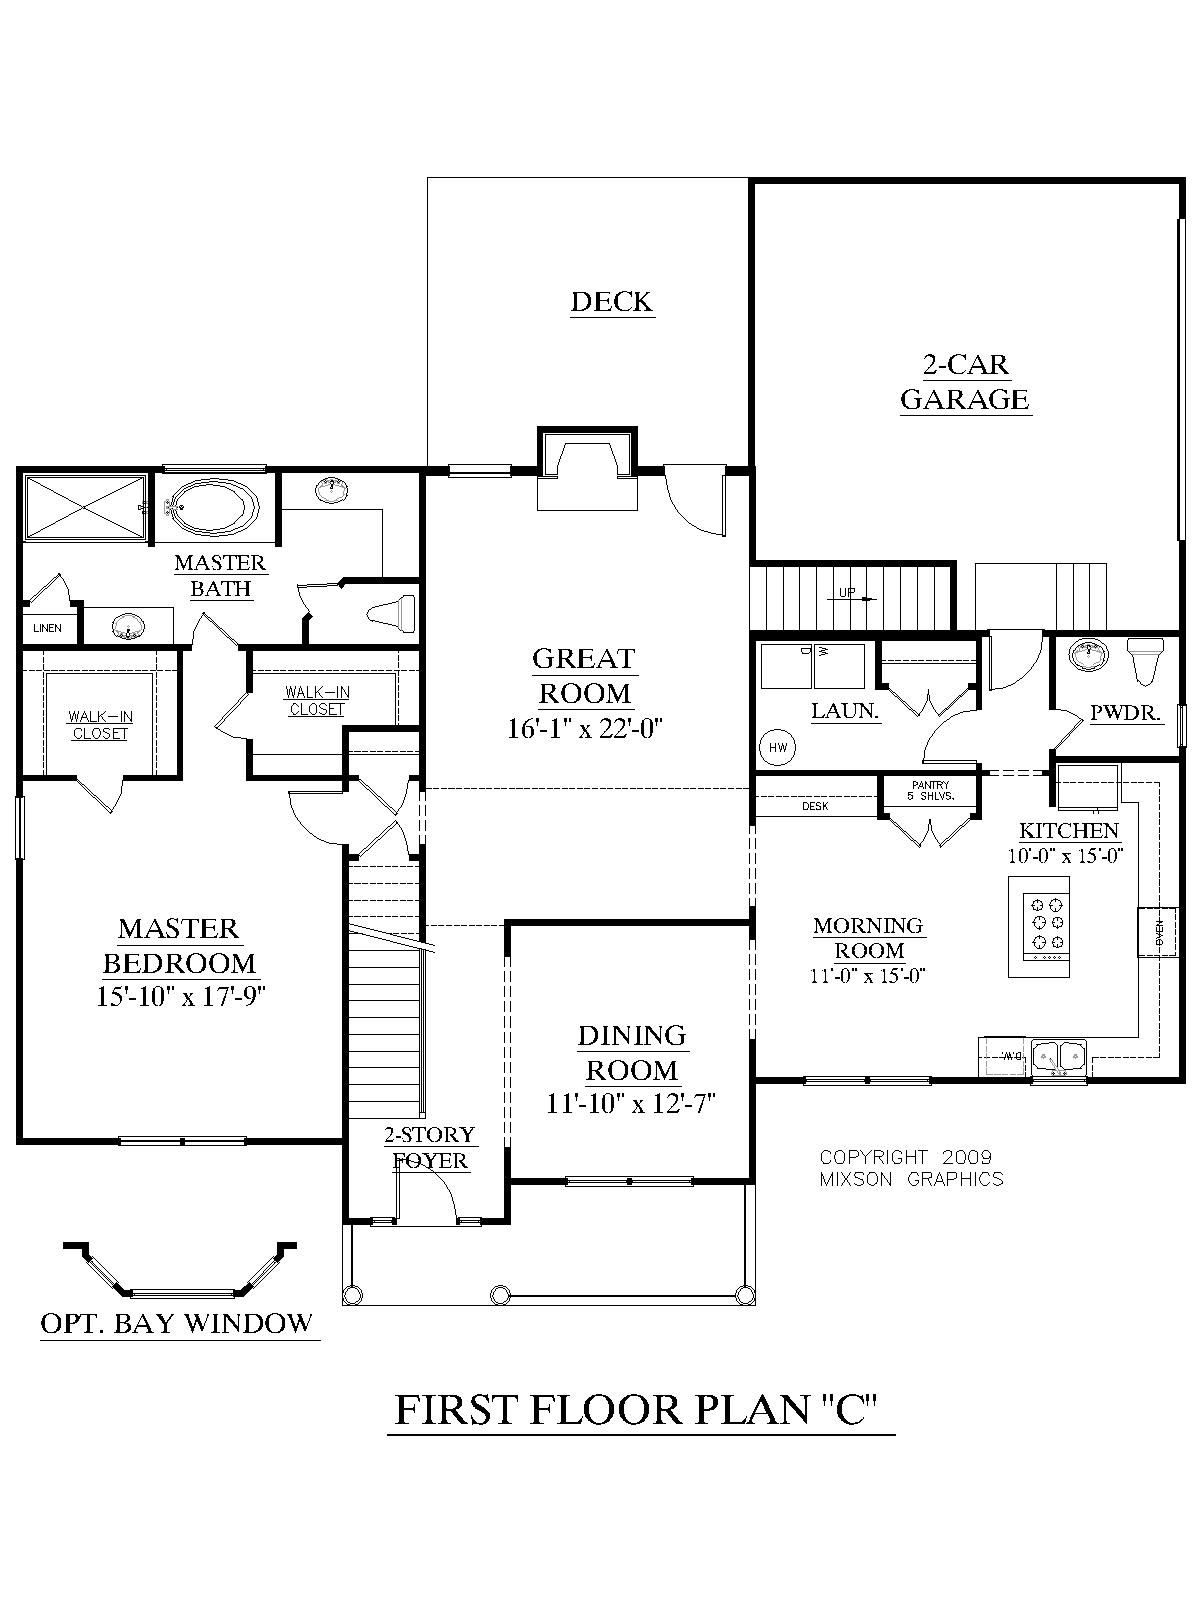 House plan 2675 c longcreek c first floor traditional 2 for One story house plans with bonus room